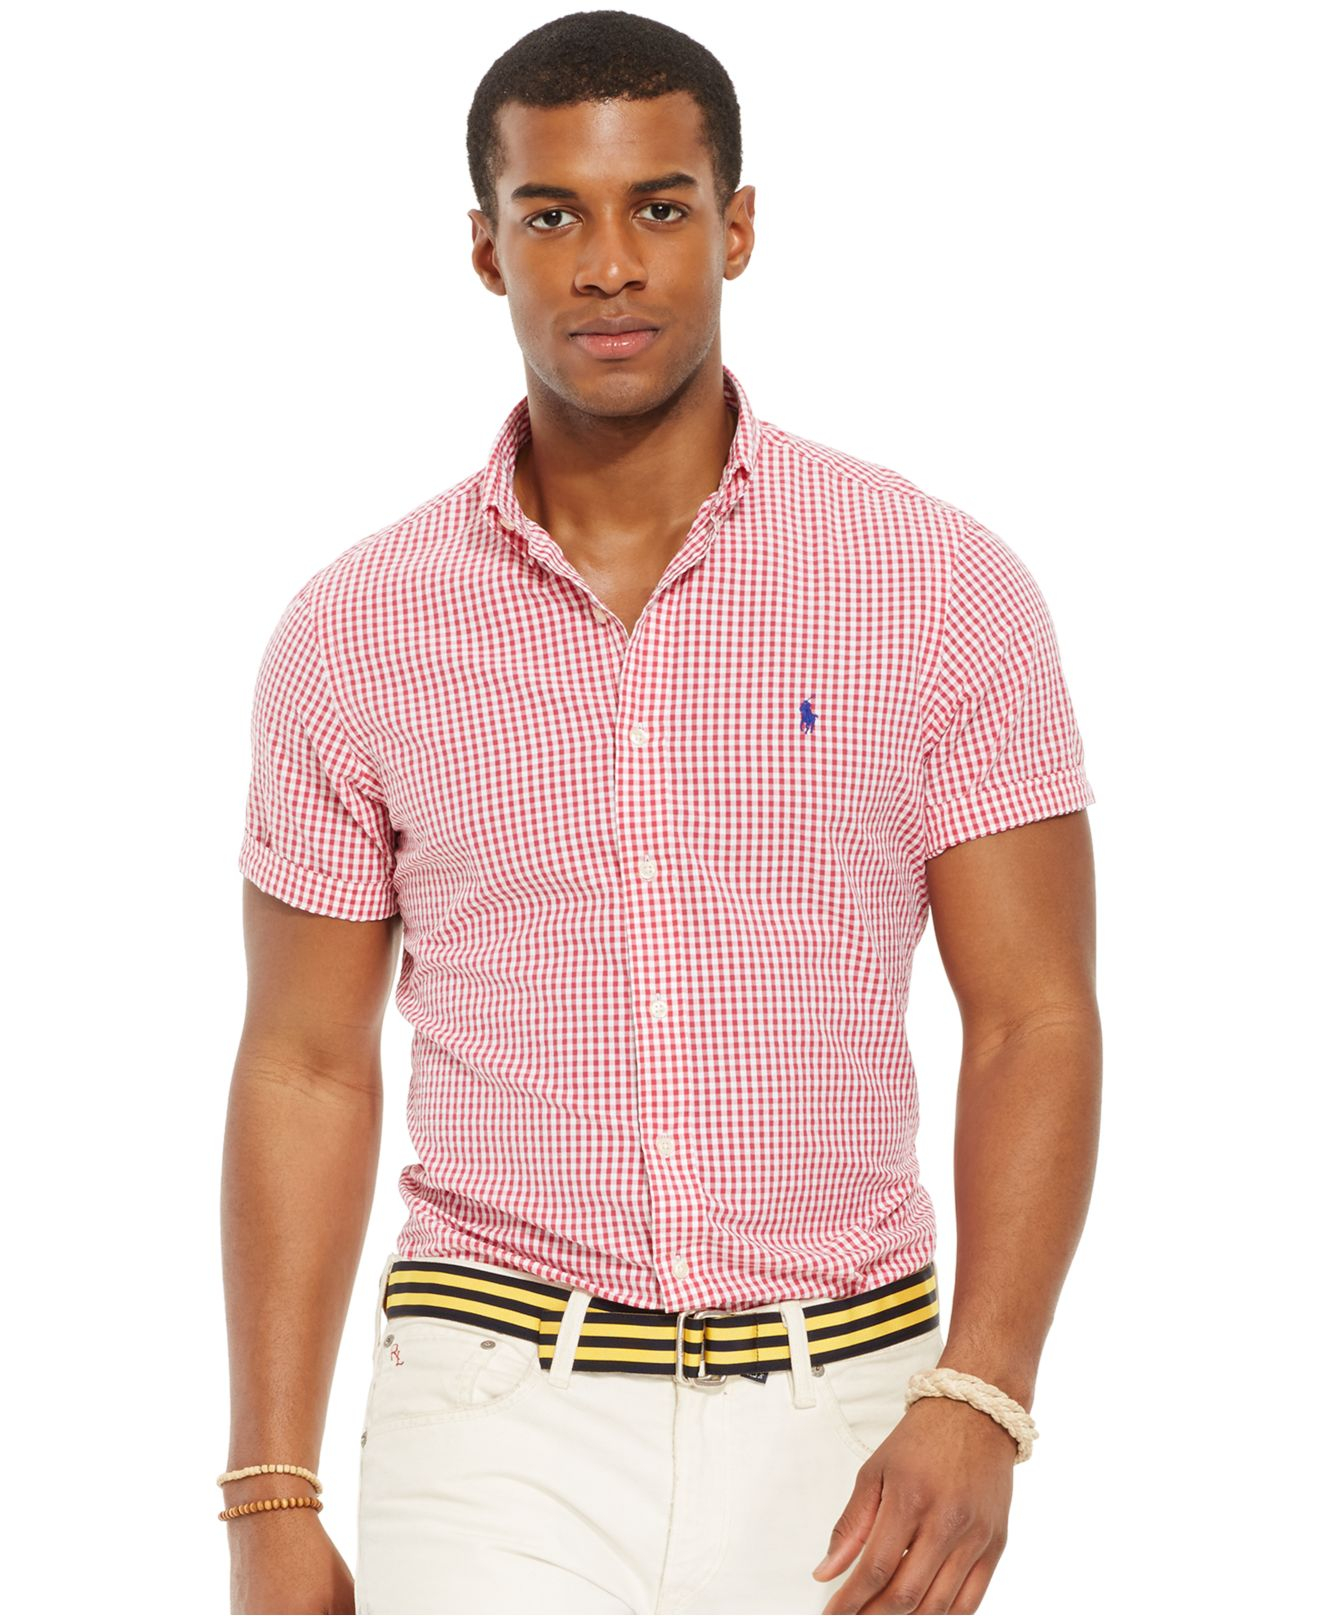 Polo ralph lauren check seersucker shirt in red for men Man in polo shirt